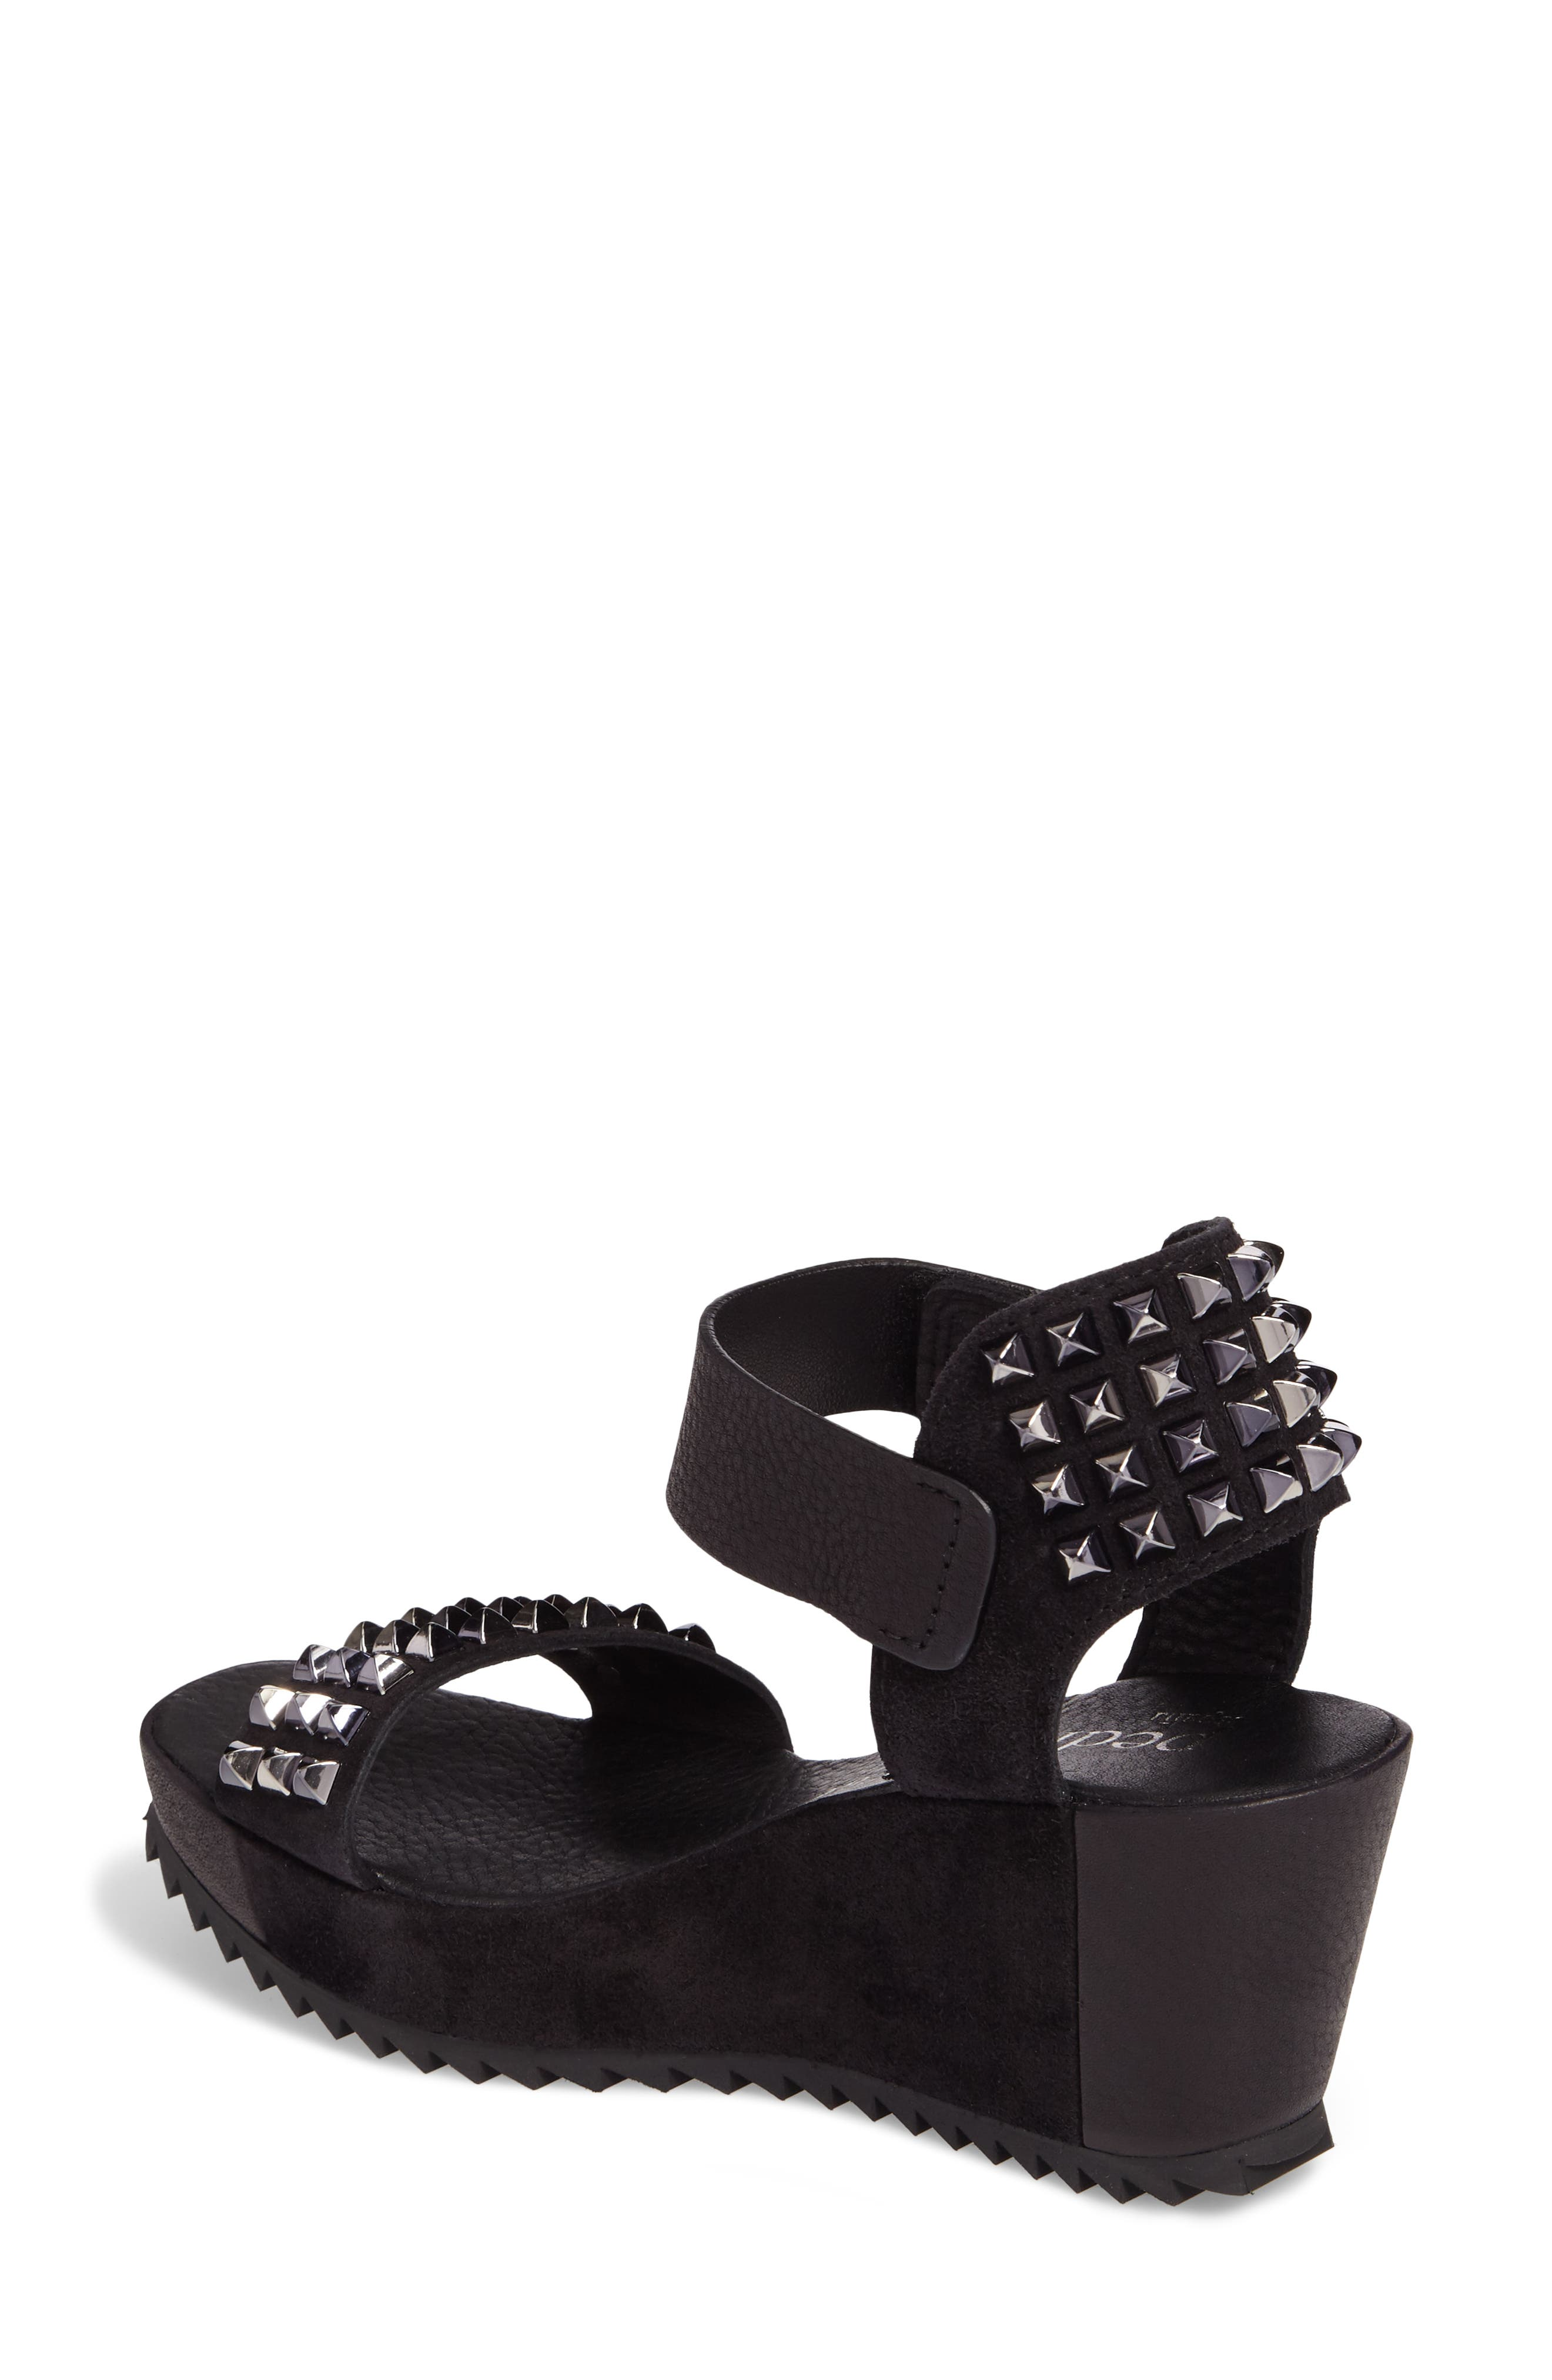 Fortuna Studded Wedge Sandal,                             Alternate thumbnail 2, color,